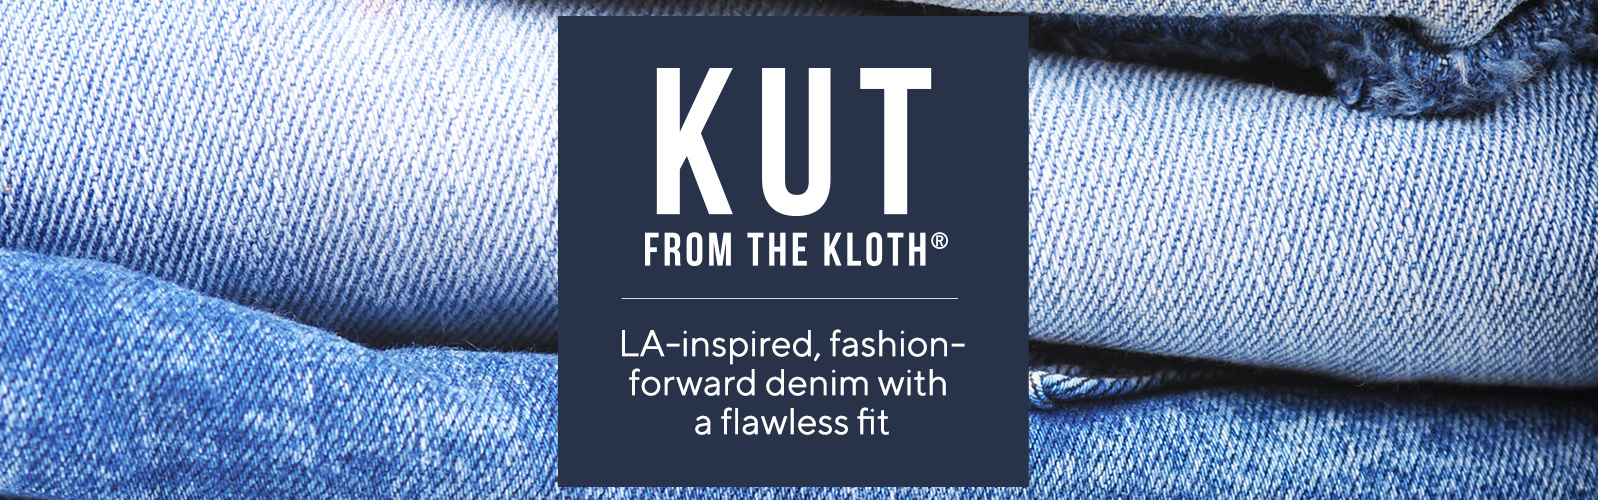 Kut from the Kloth LA-inspired, fashion-forward denim with a flawless fit